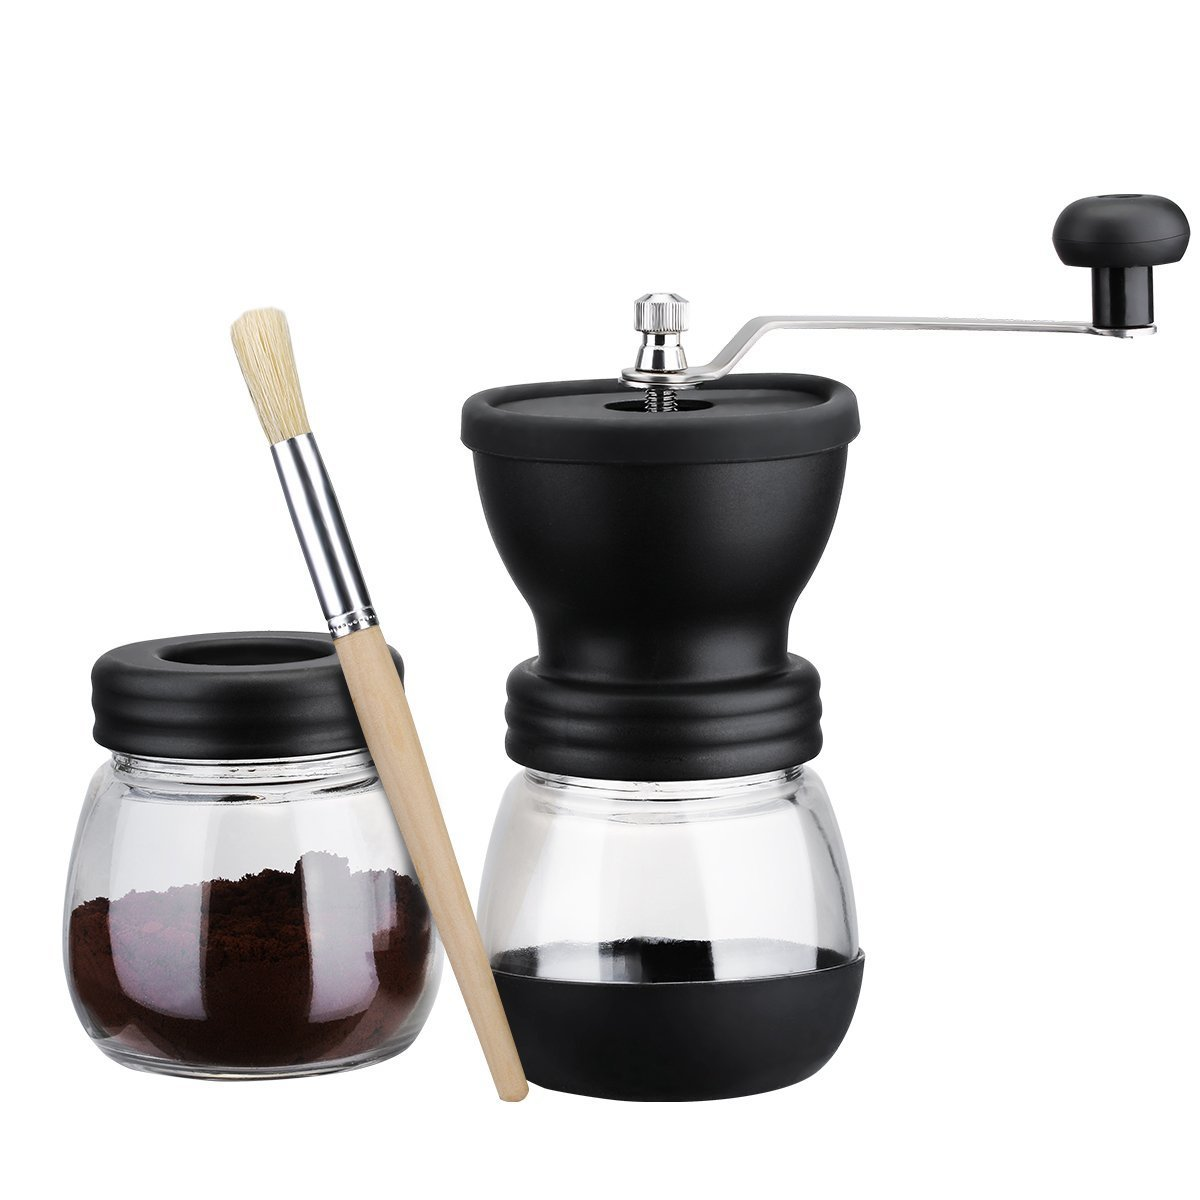 Manual Coffee Grinder with Storage Jar,Soft Brush -Storage Capacity 350 mL Ceramic Coffee Mill, Hand Ground Coffee Beans Taste Best, Adjustable Grind, Conical Ceramic Burr Quiet and Portable